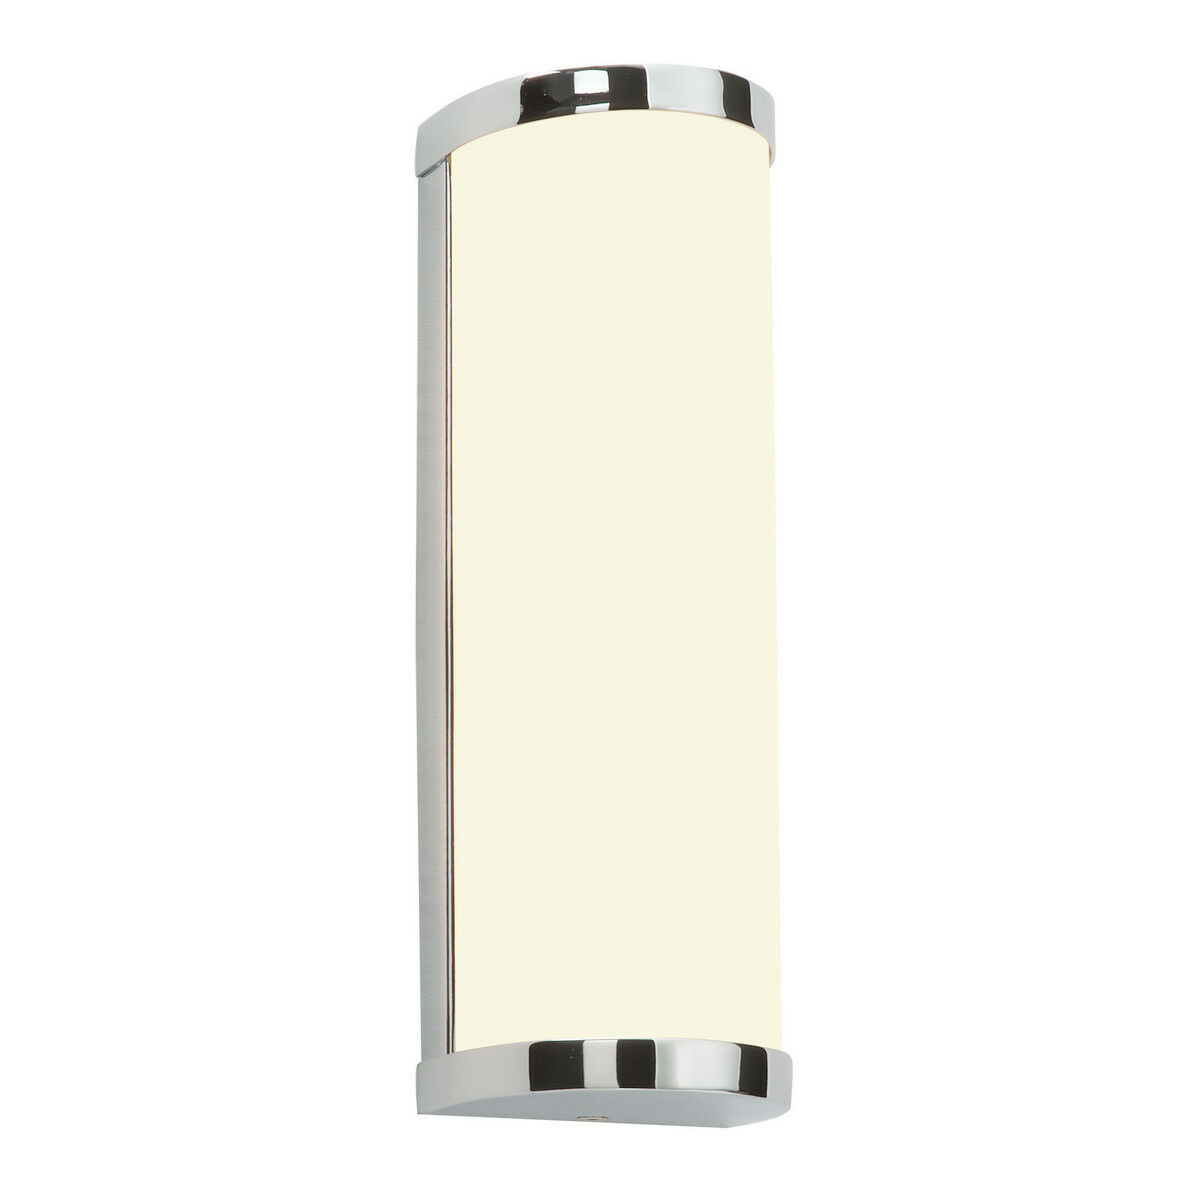 Saxby ice modern curved chrome frosted glass bathroom wall light 1 of 1free shipping aloadofball Images